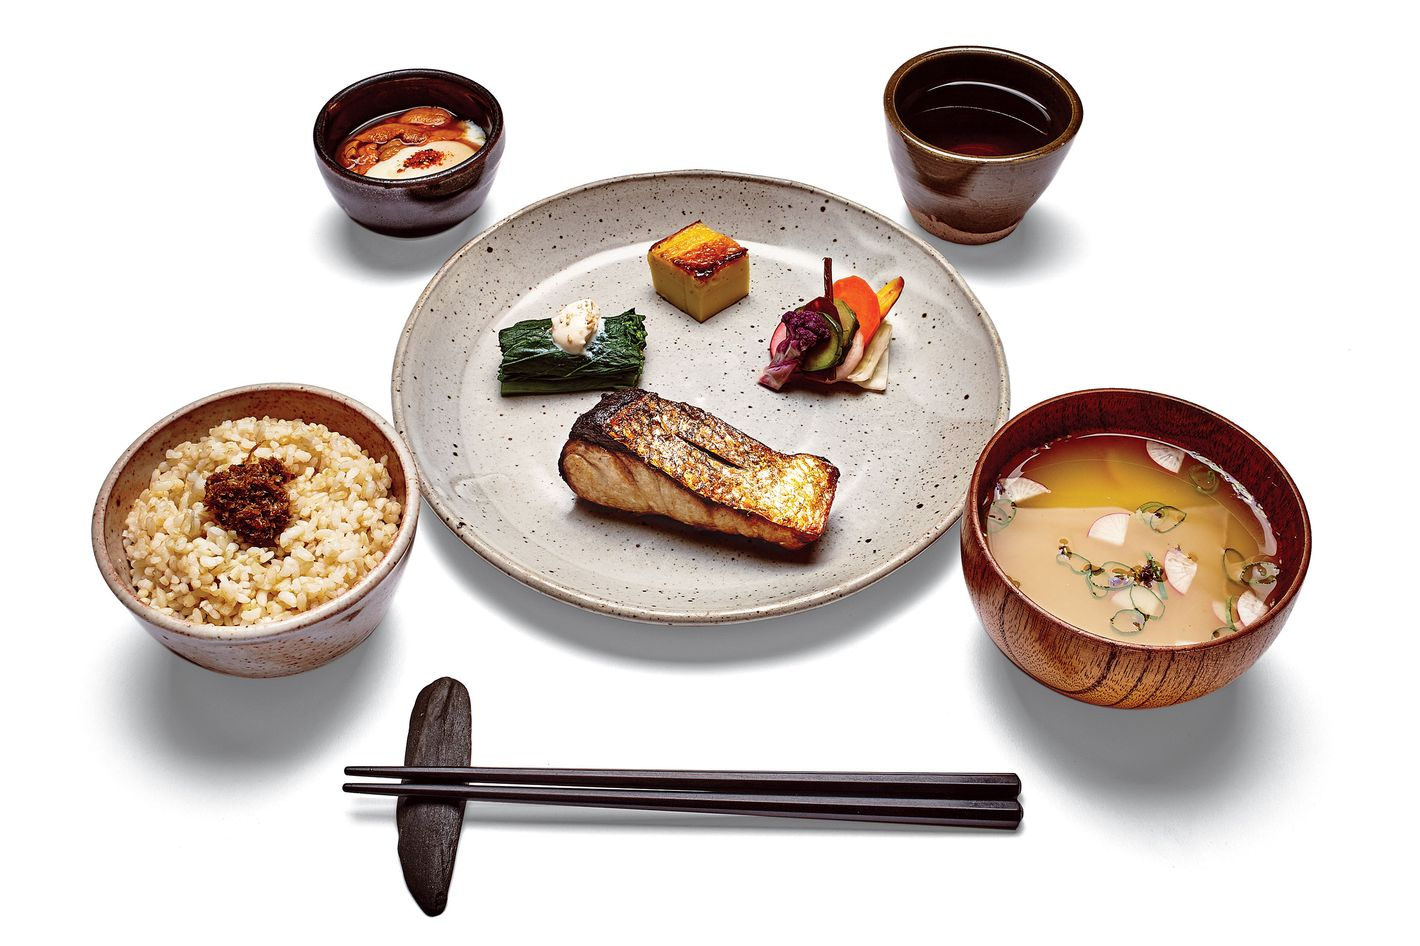 Now it will be easier to replicate Okonomi's breakfast at home.